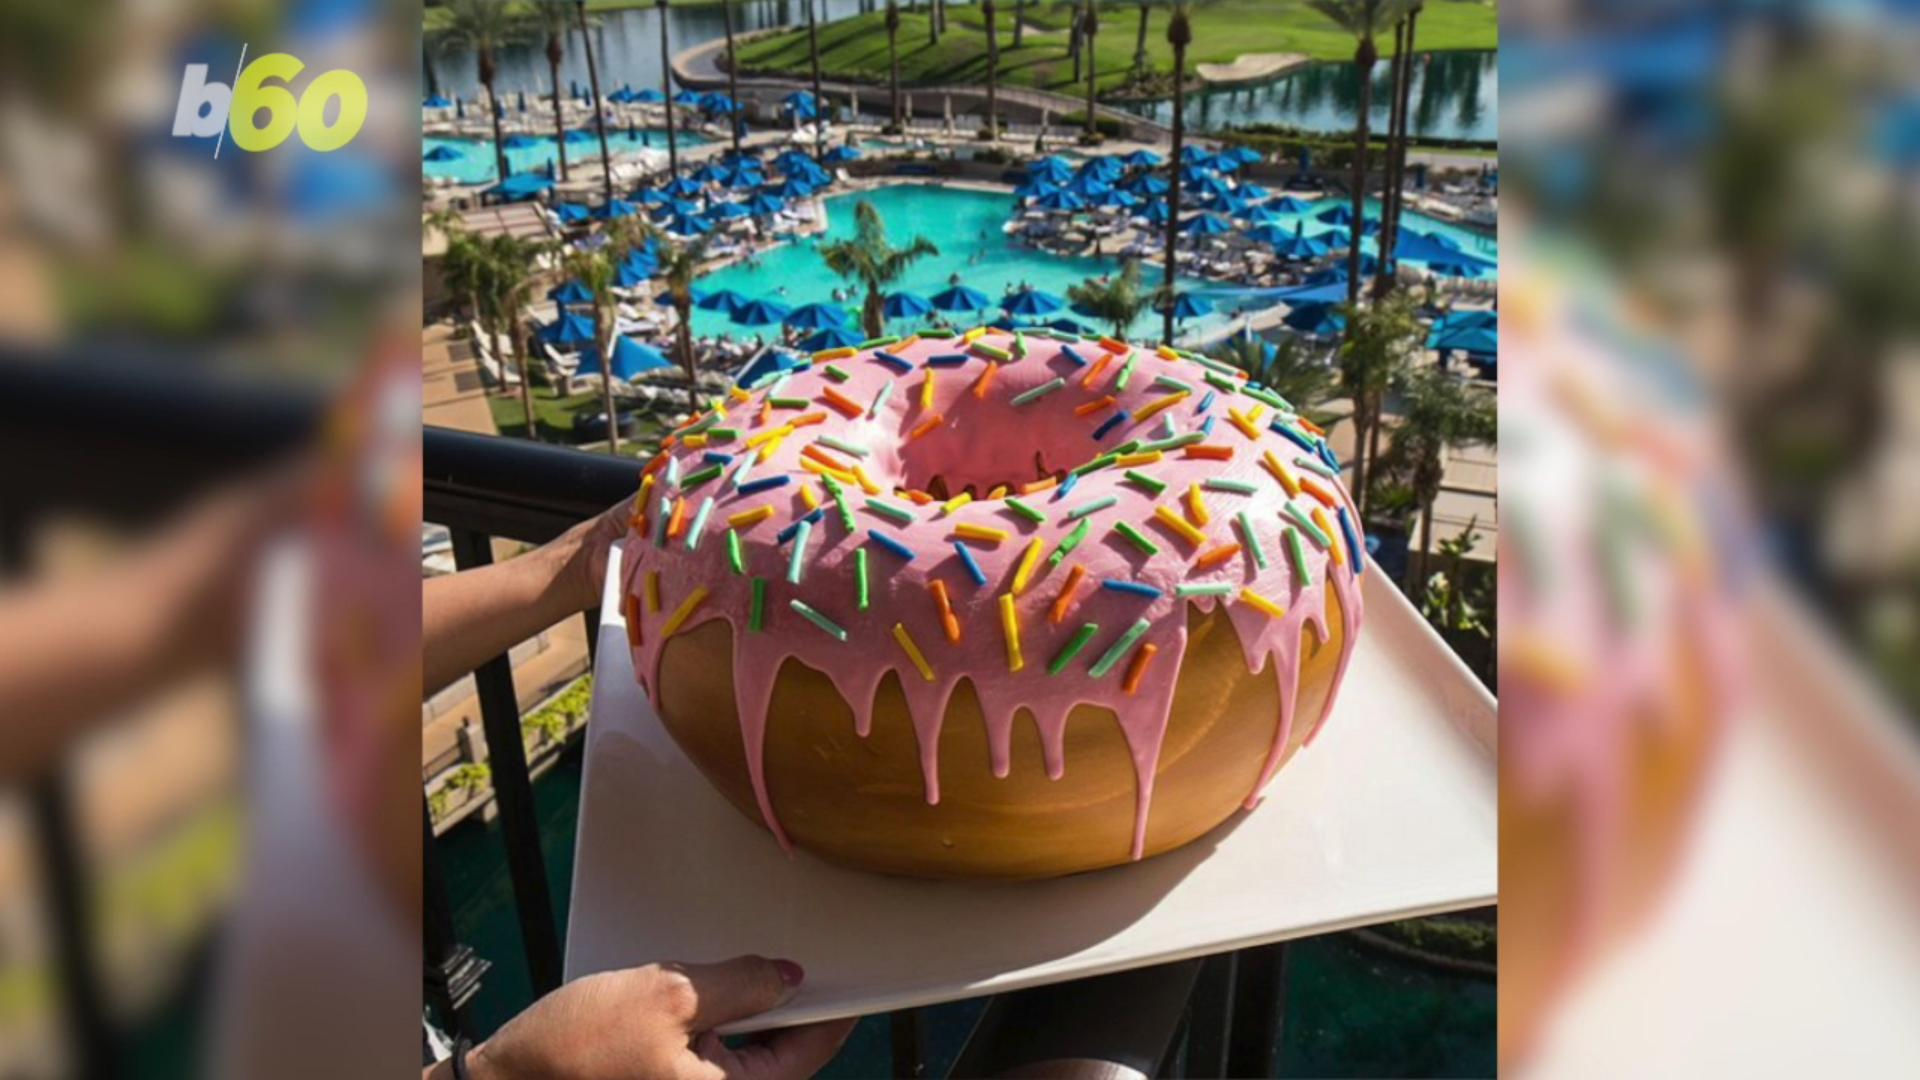 'Donut Disturb' is This Hotel's Promo That Delivers a 10-Pound Donut To Your Room